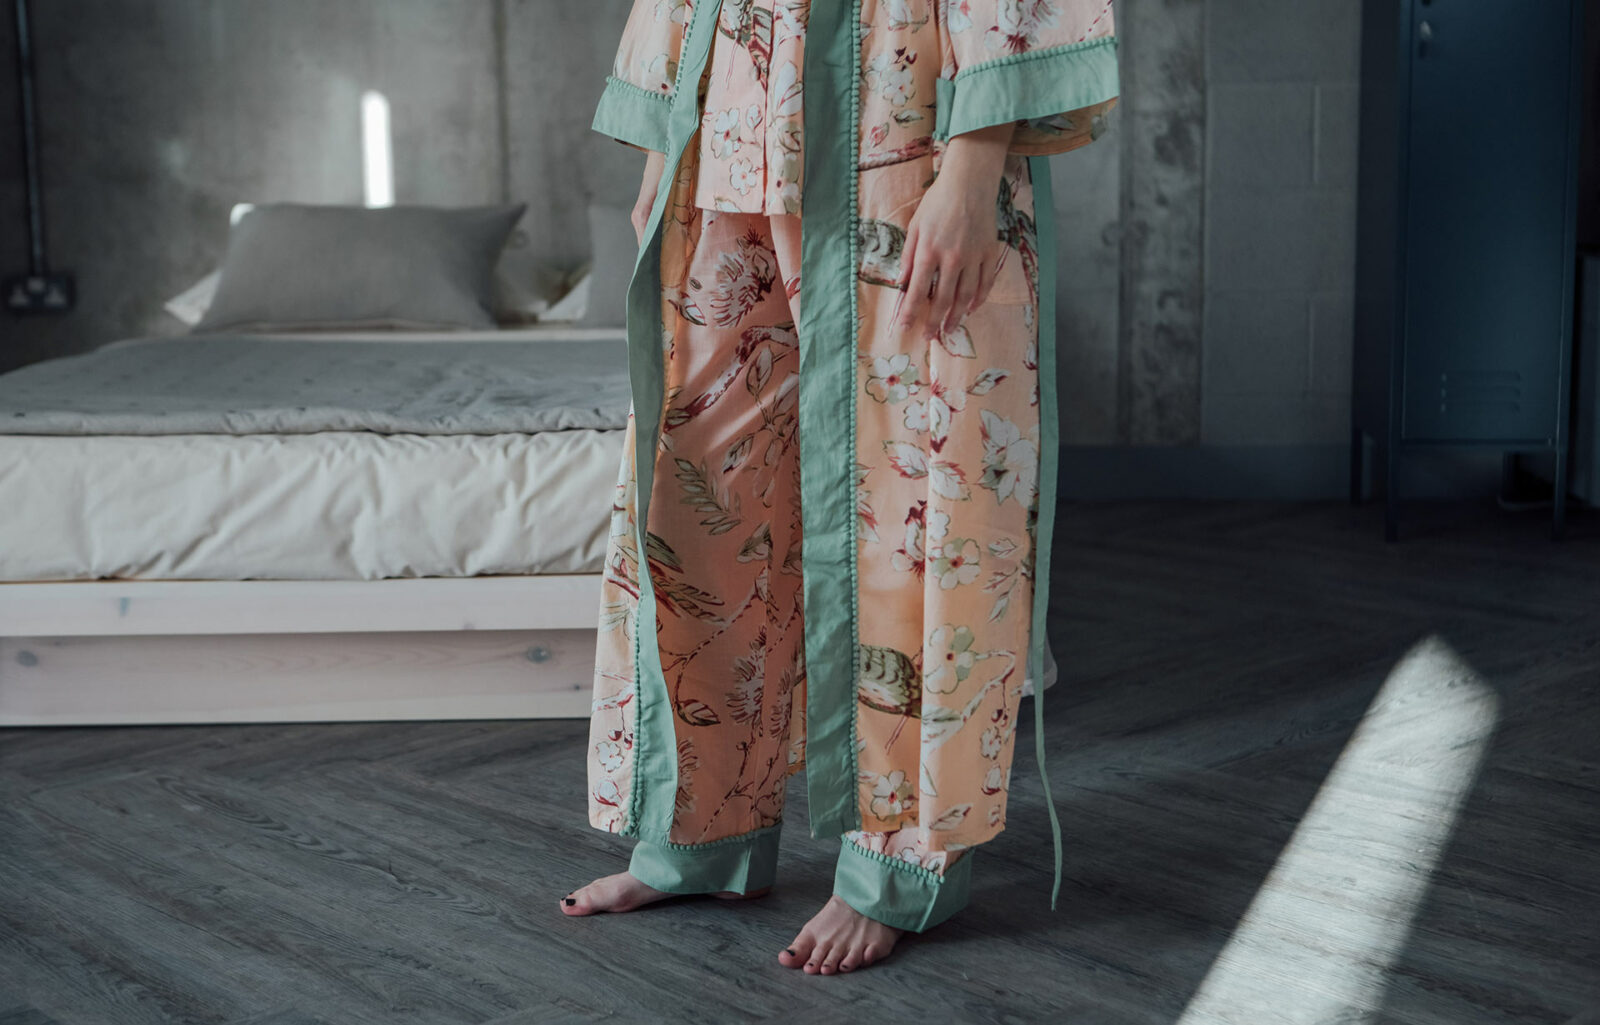 pastel colours floral cotton pyjama set with matching robe a view of the edging details